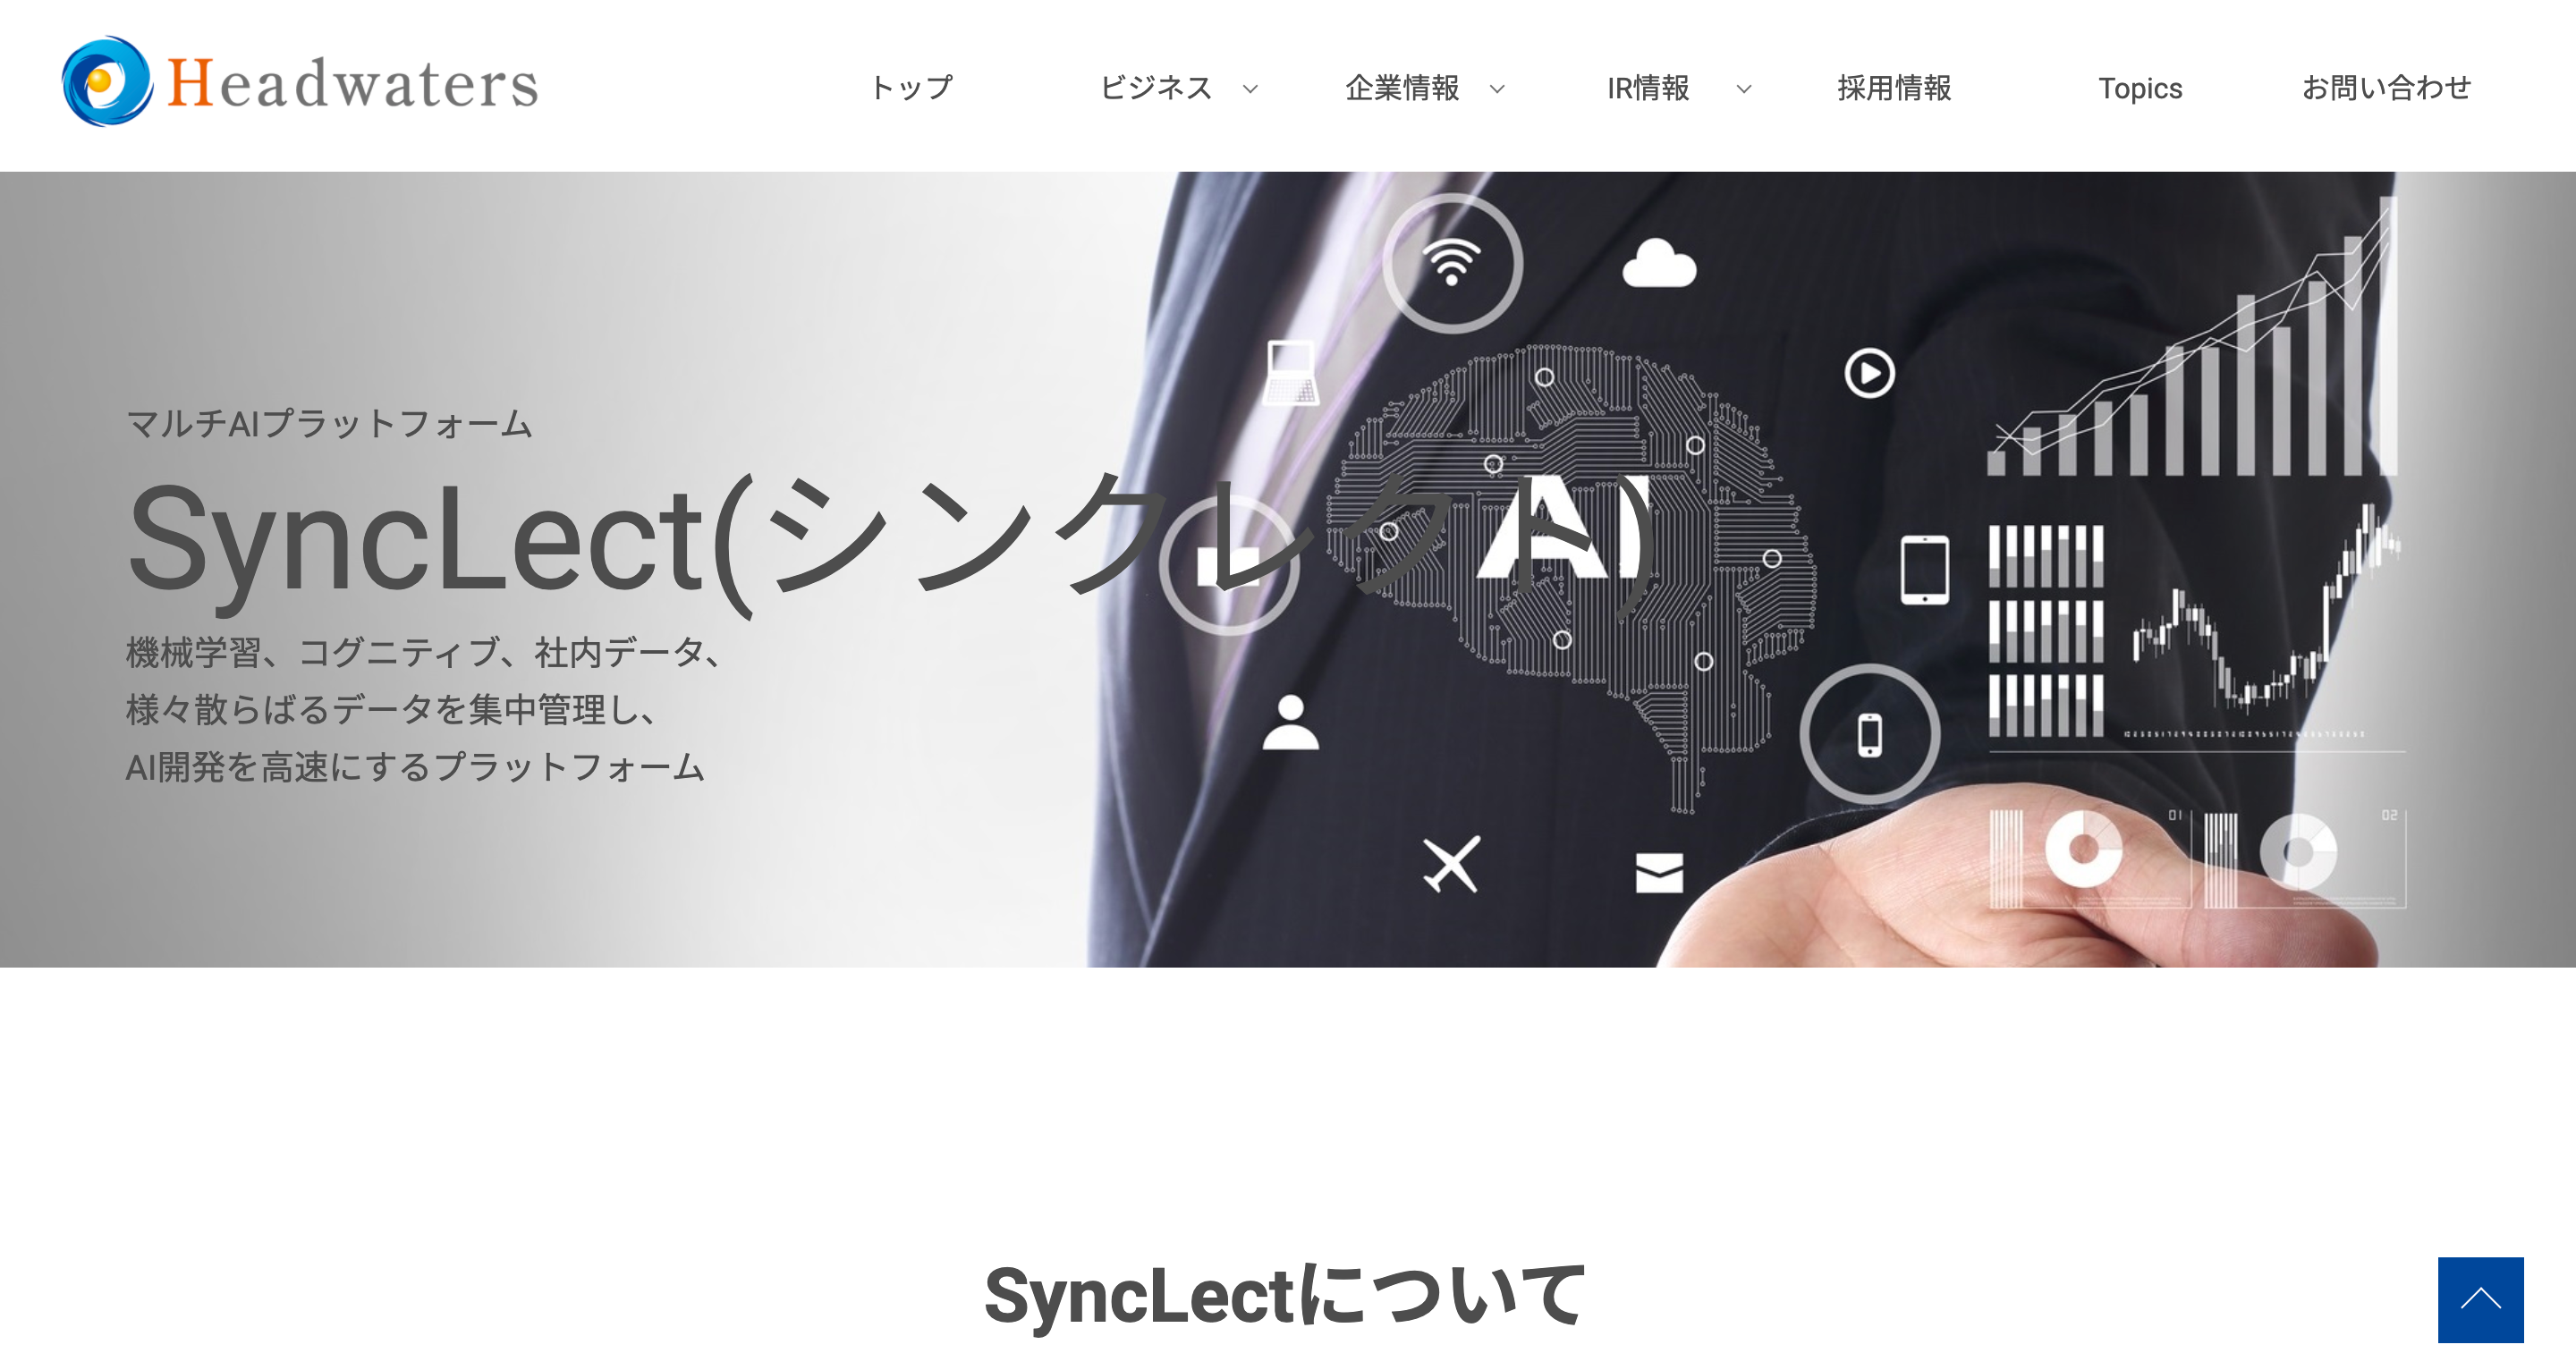 SyncLect